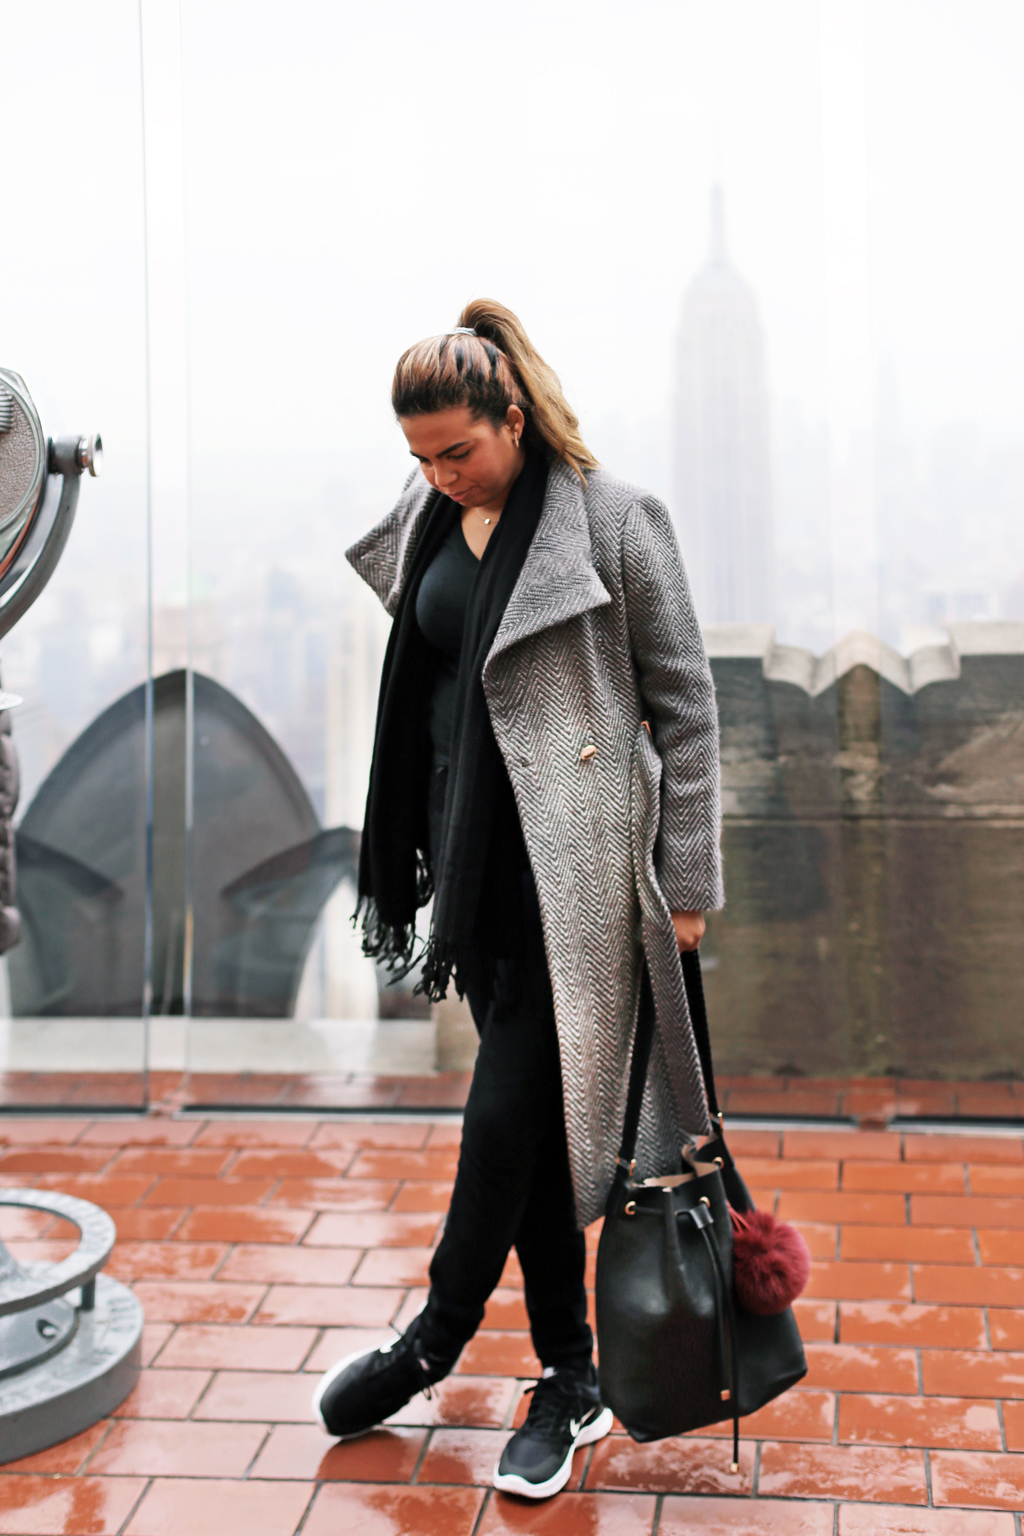 All black and a gray coat